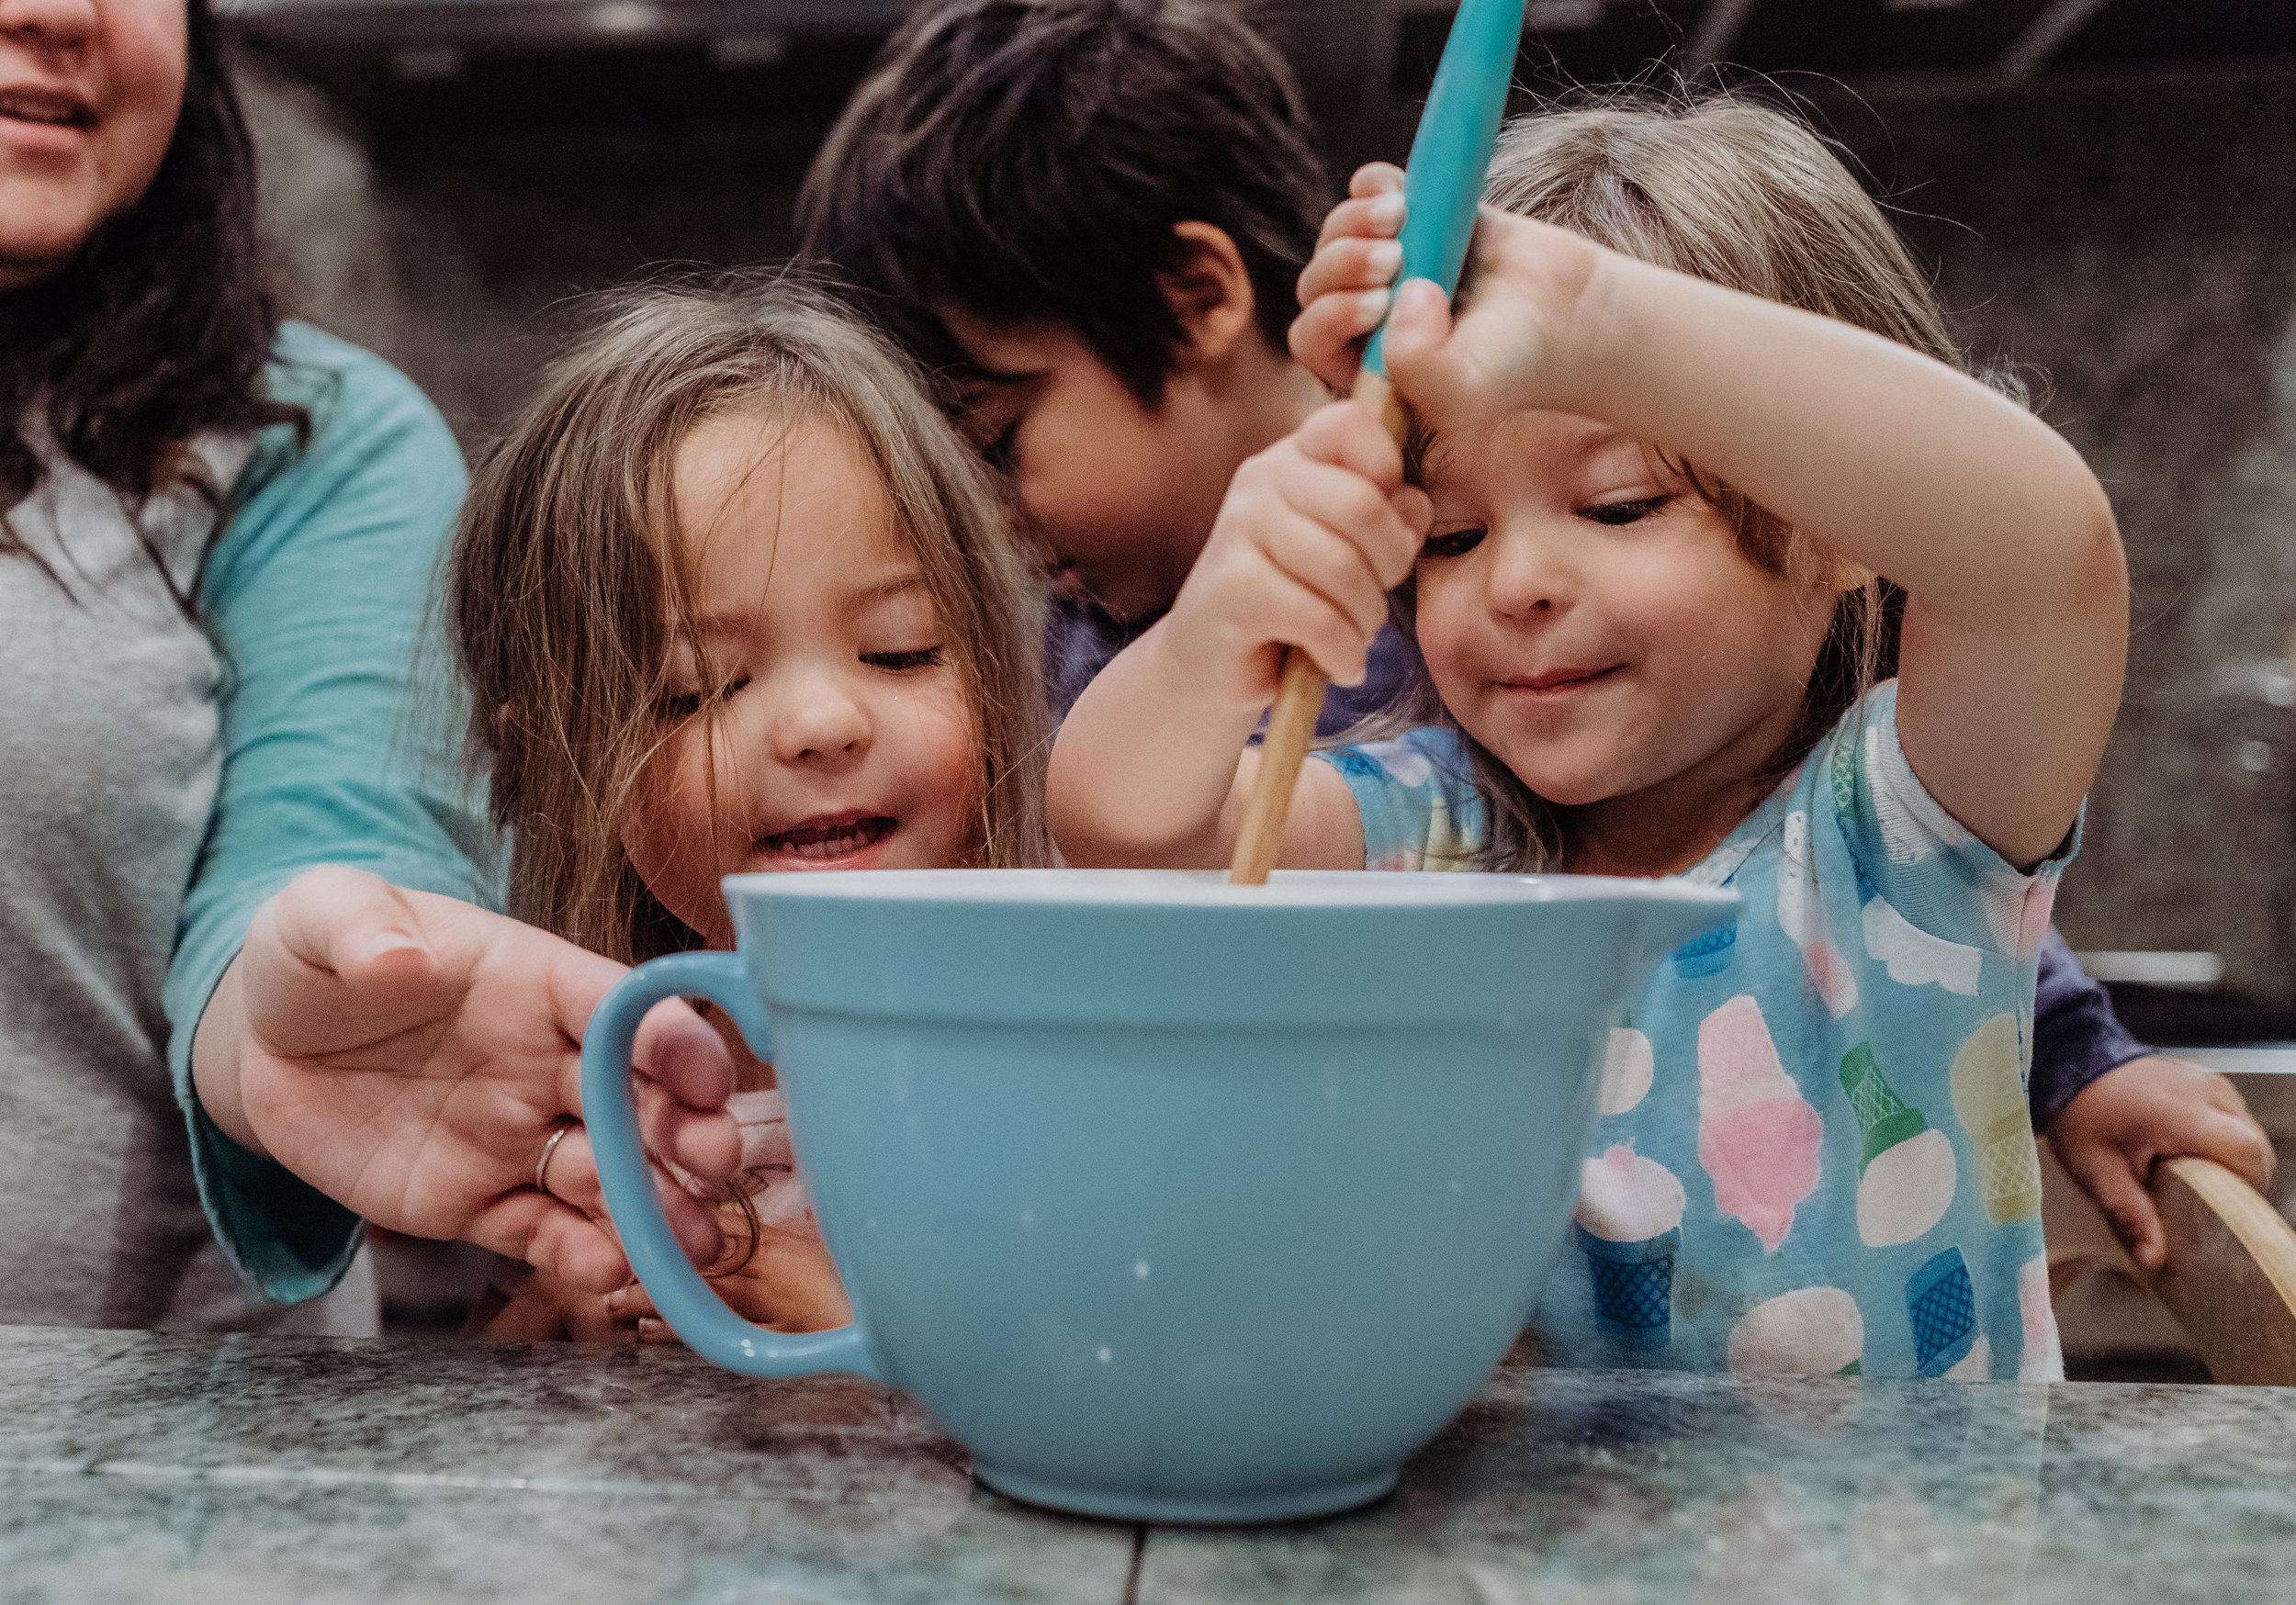 documentary lifestyle family photo session kids helping in kitchen mixing bowl Ore Adesina Photography Oklahoma City